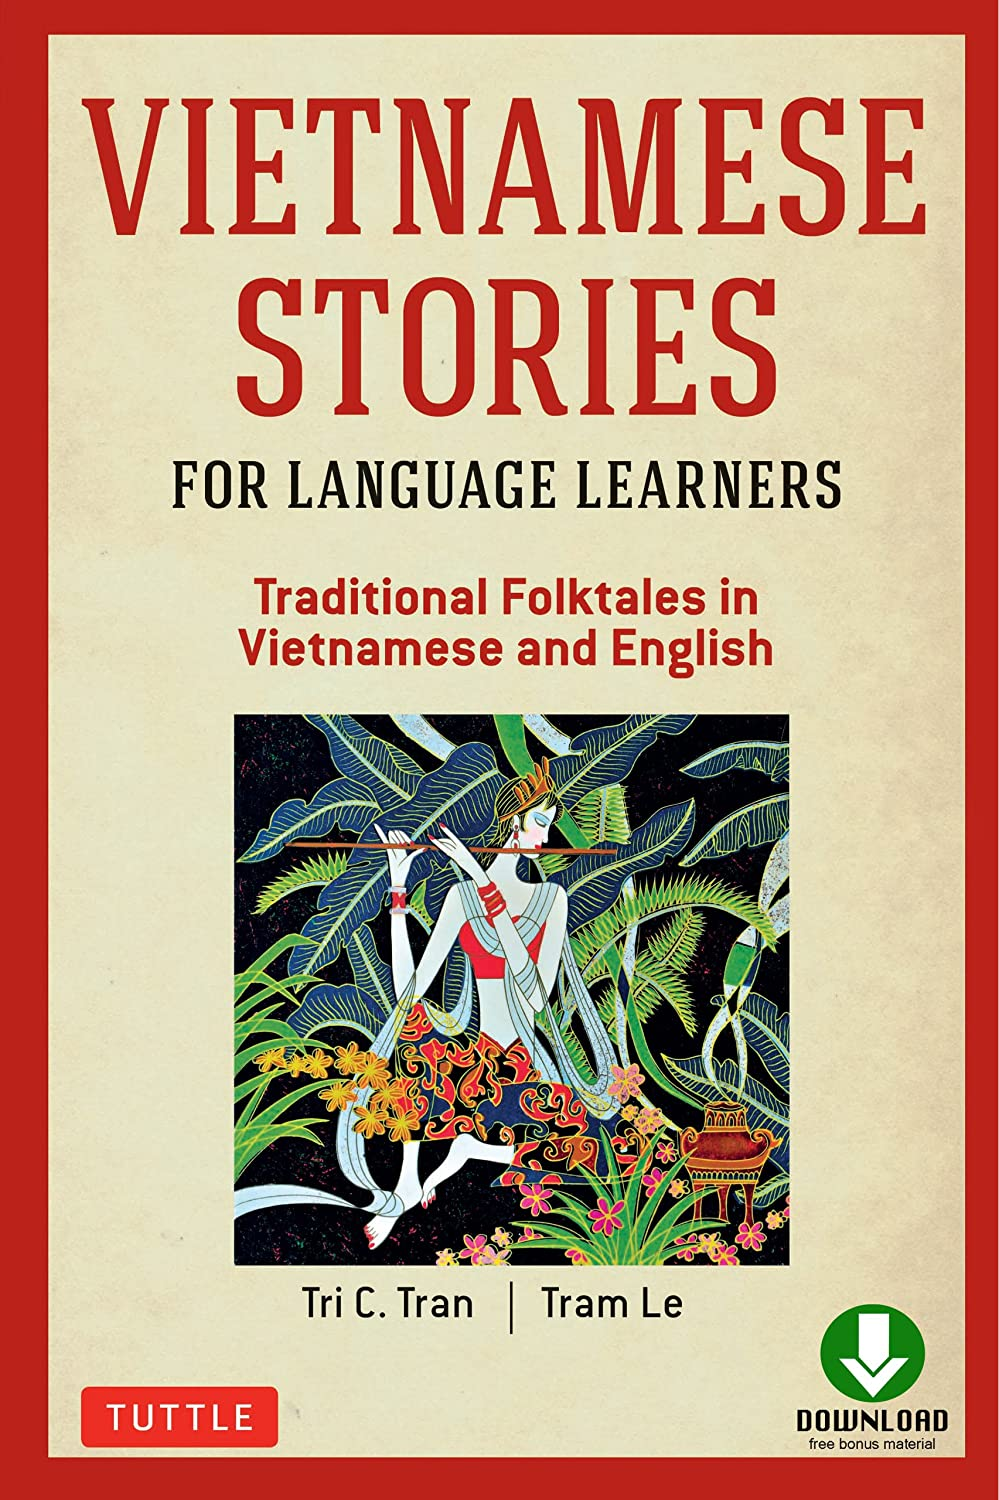 Vietnamese Stories for Language Learners: Traditional